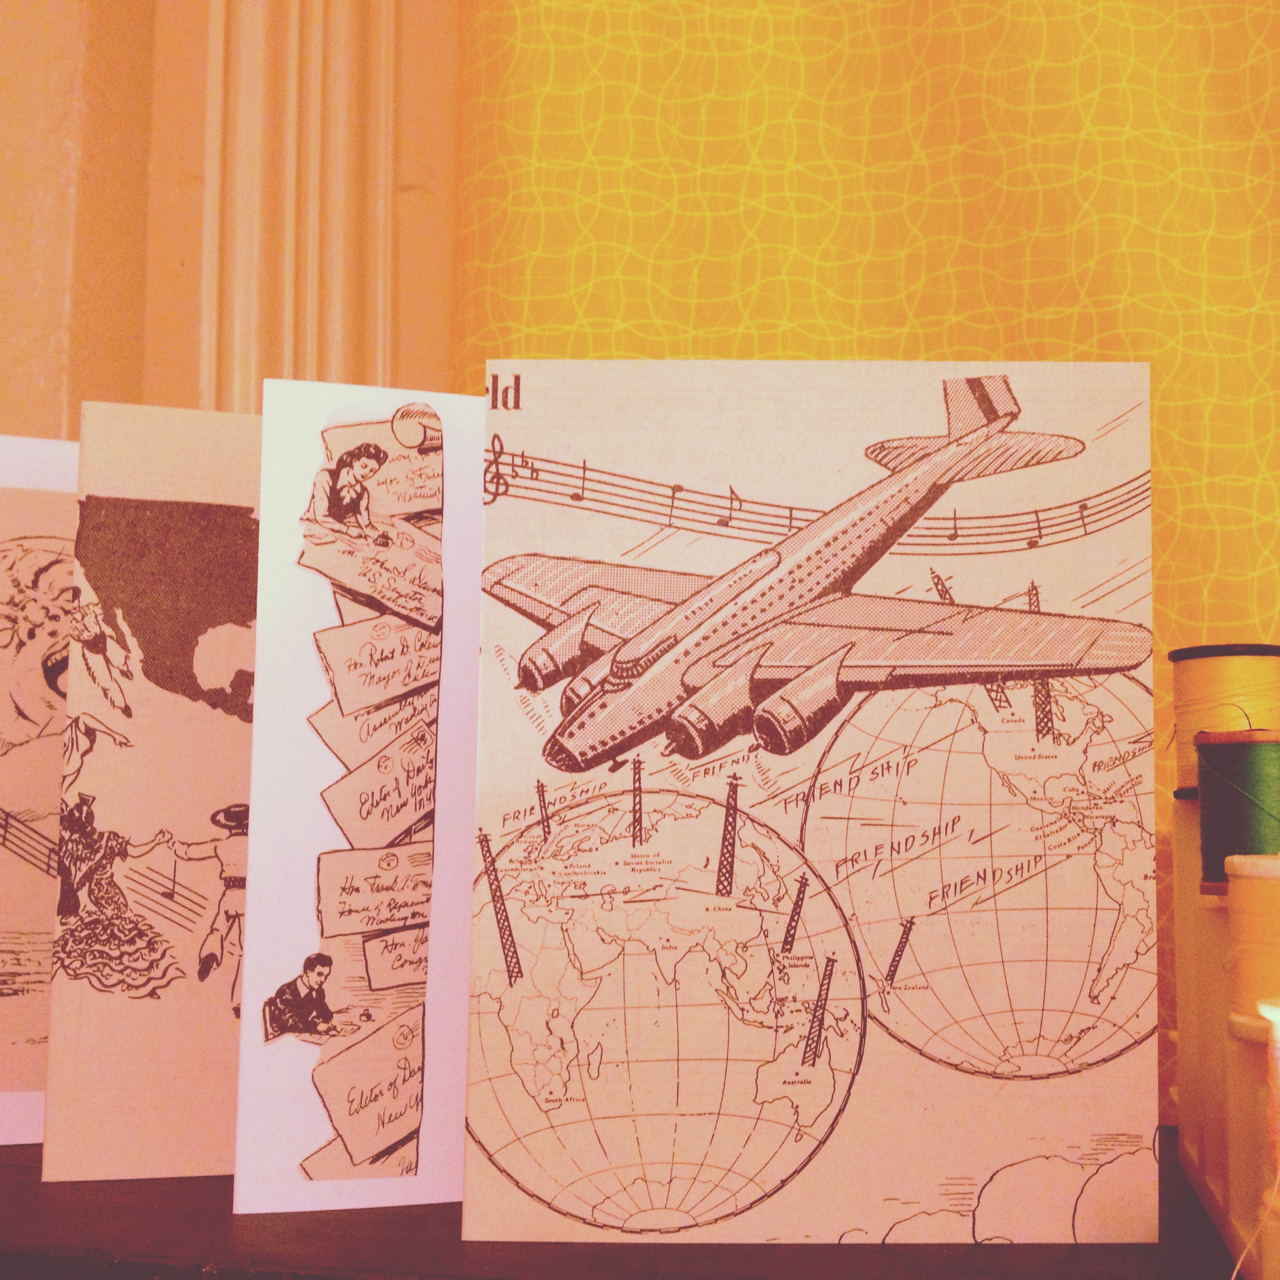 Making some handmade cards….. Anyone want to be penpals?